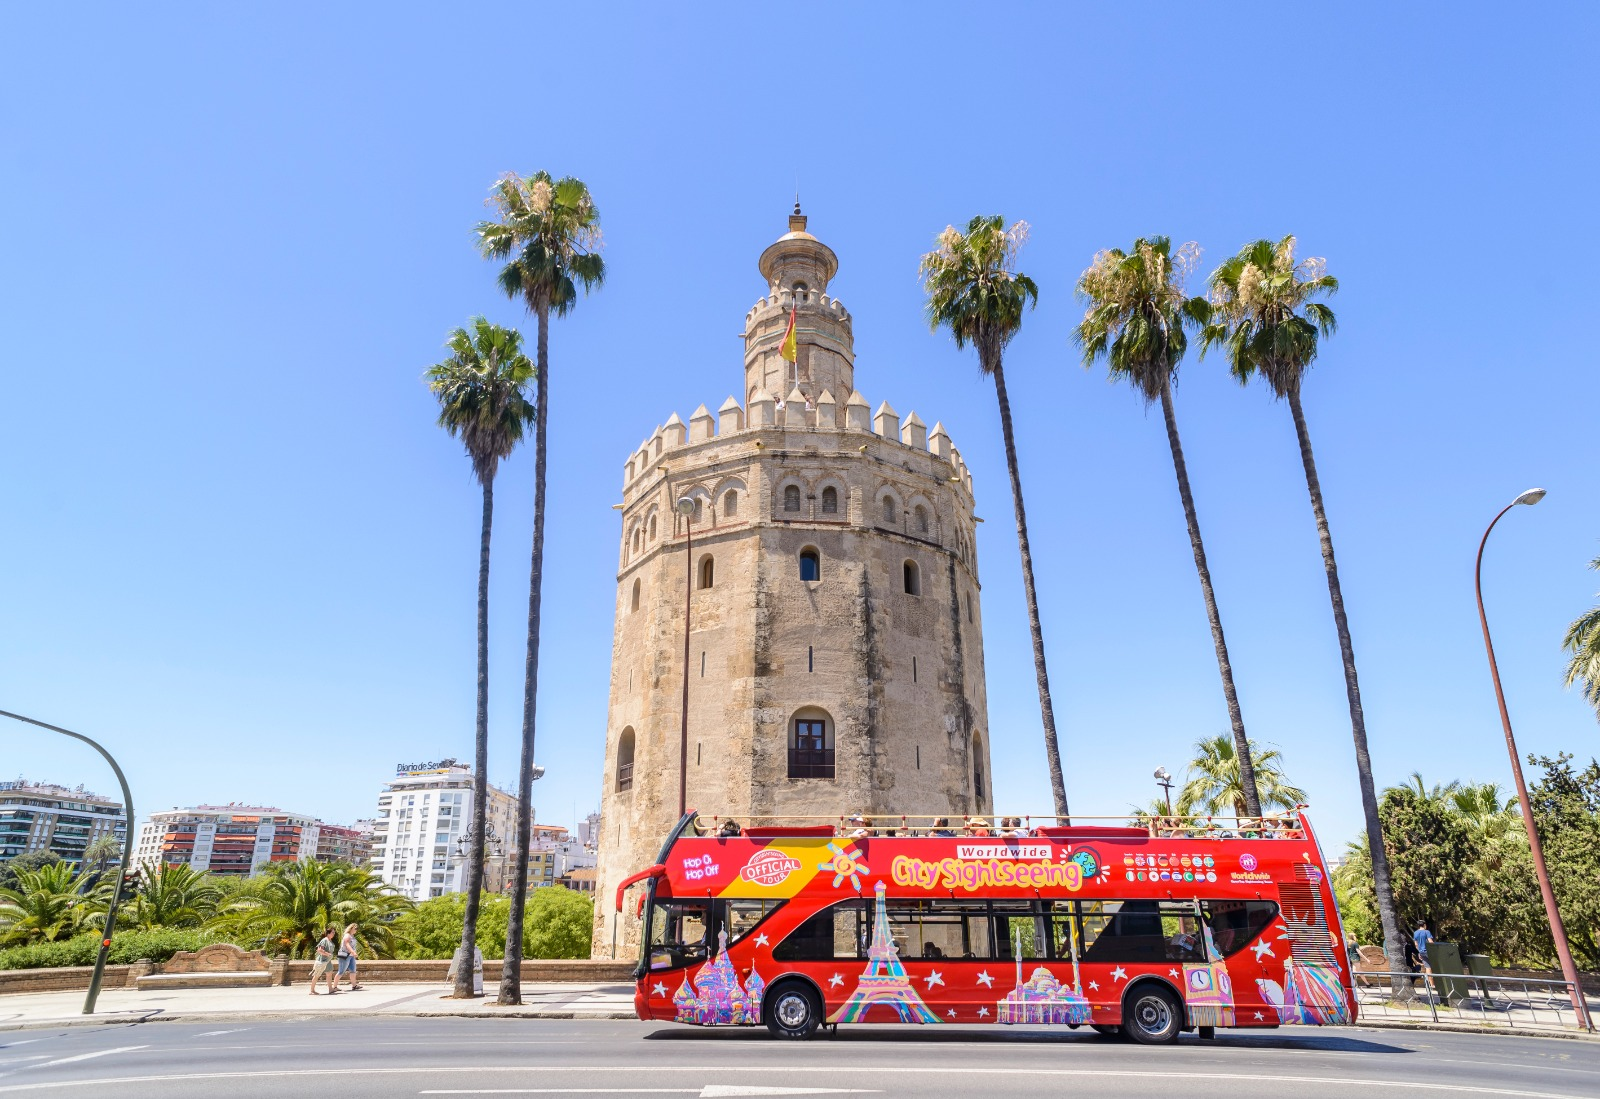 bus city sightseeing torre oro sevilla